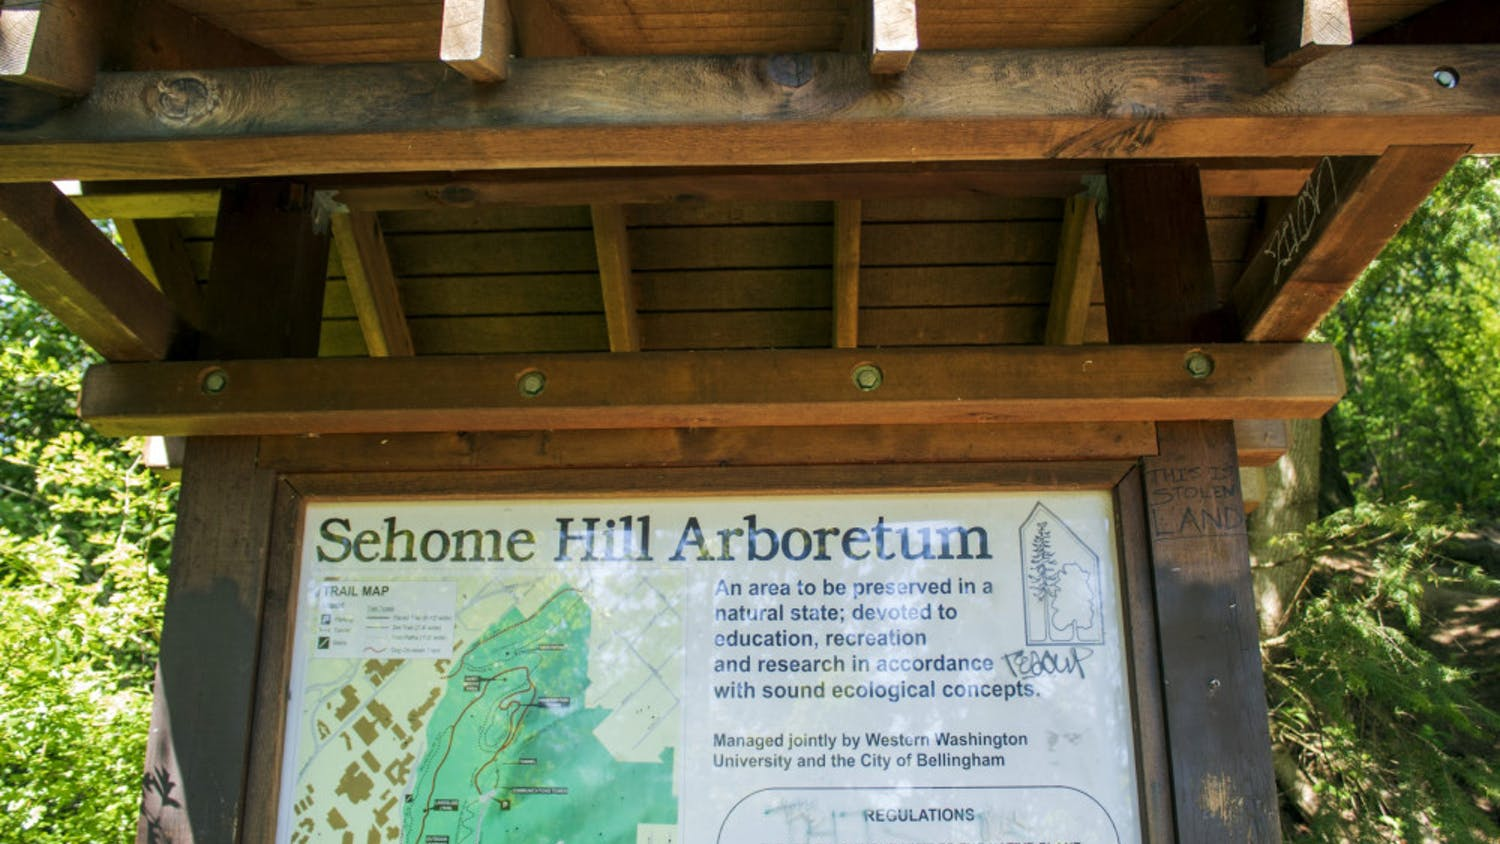 Map of Sehome Hill Arboretum trail system on Tuesday, May 11, 2021, in Bellingham, Wash. The map shows the 175.5 acres included in the Arboretum. // Photo by Cameron Martinez